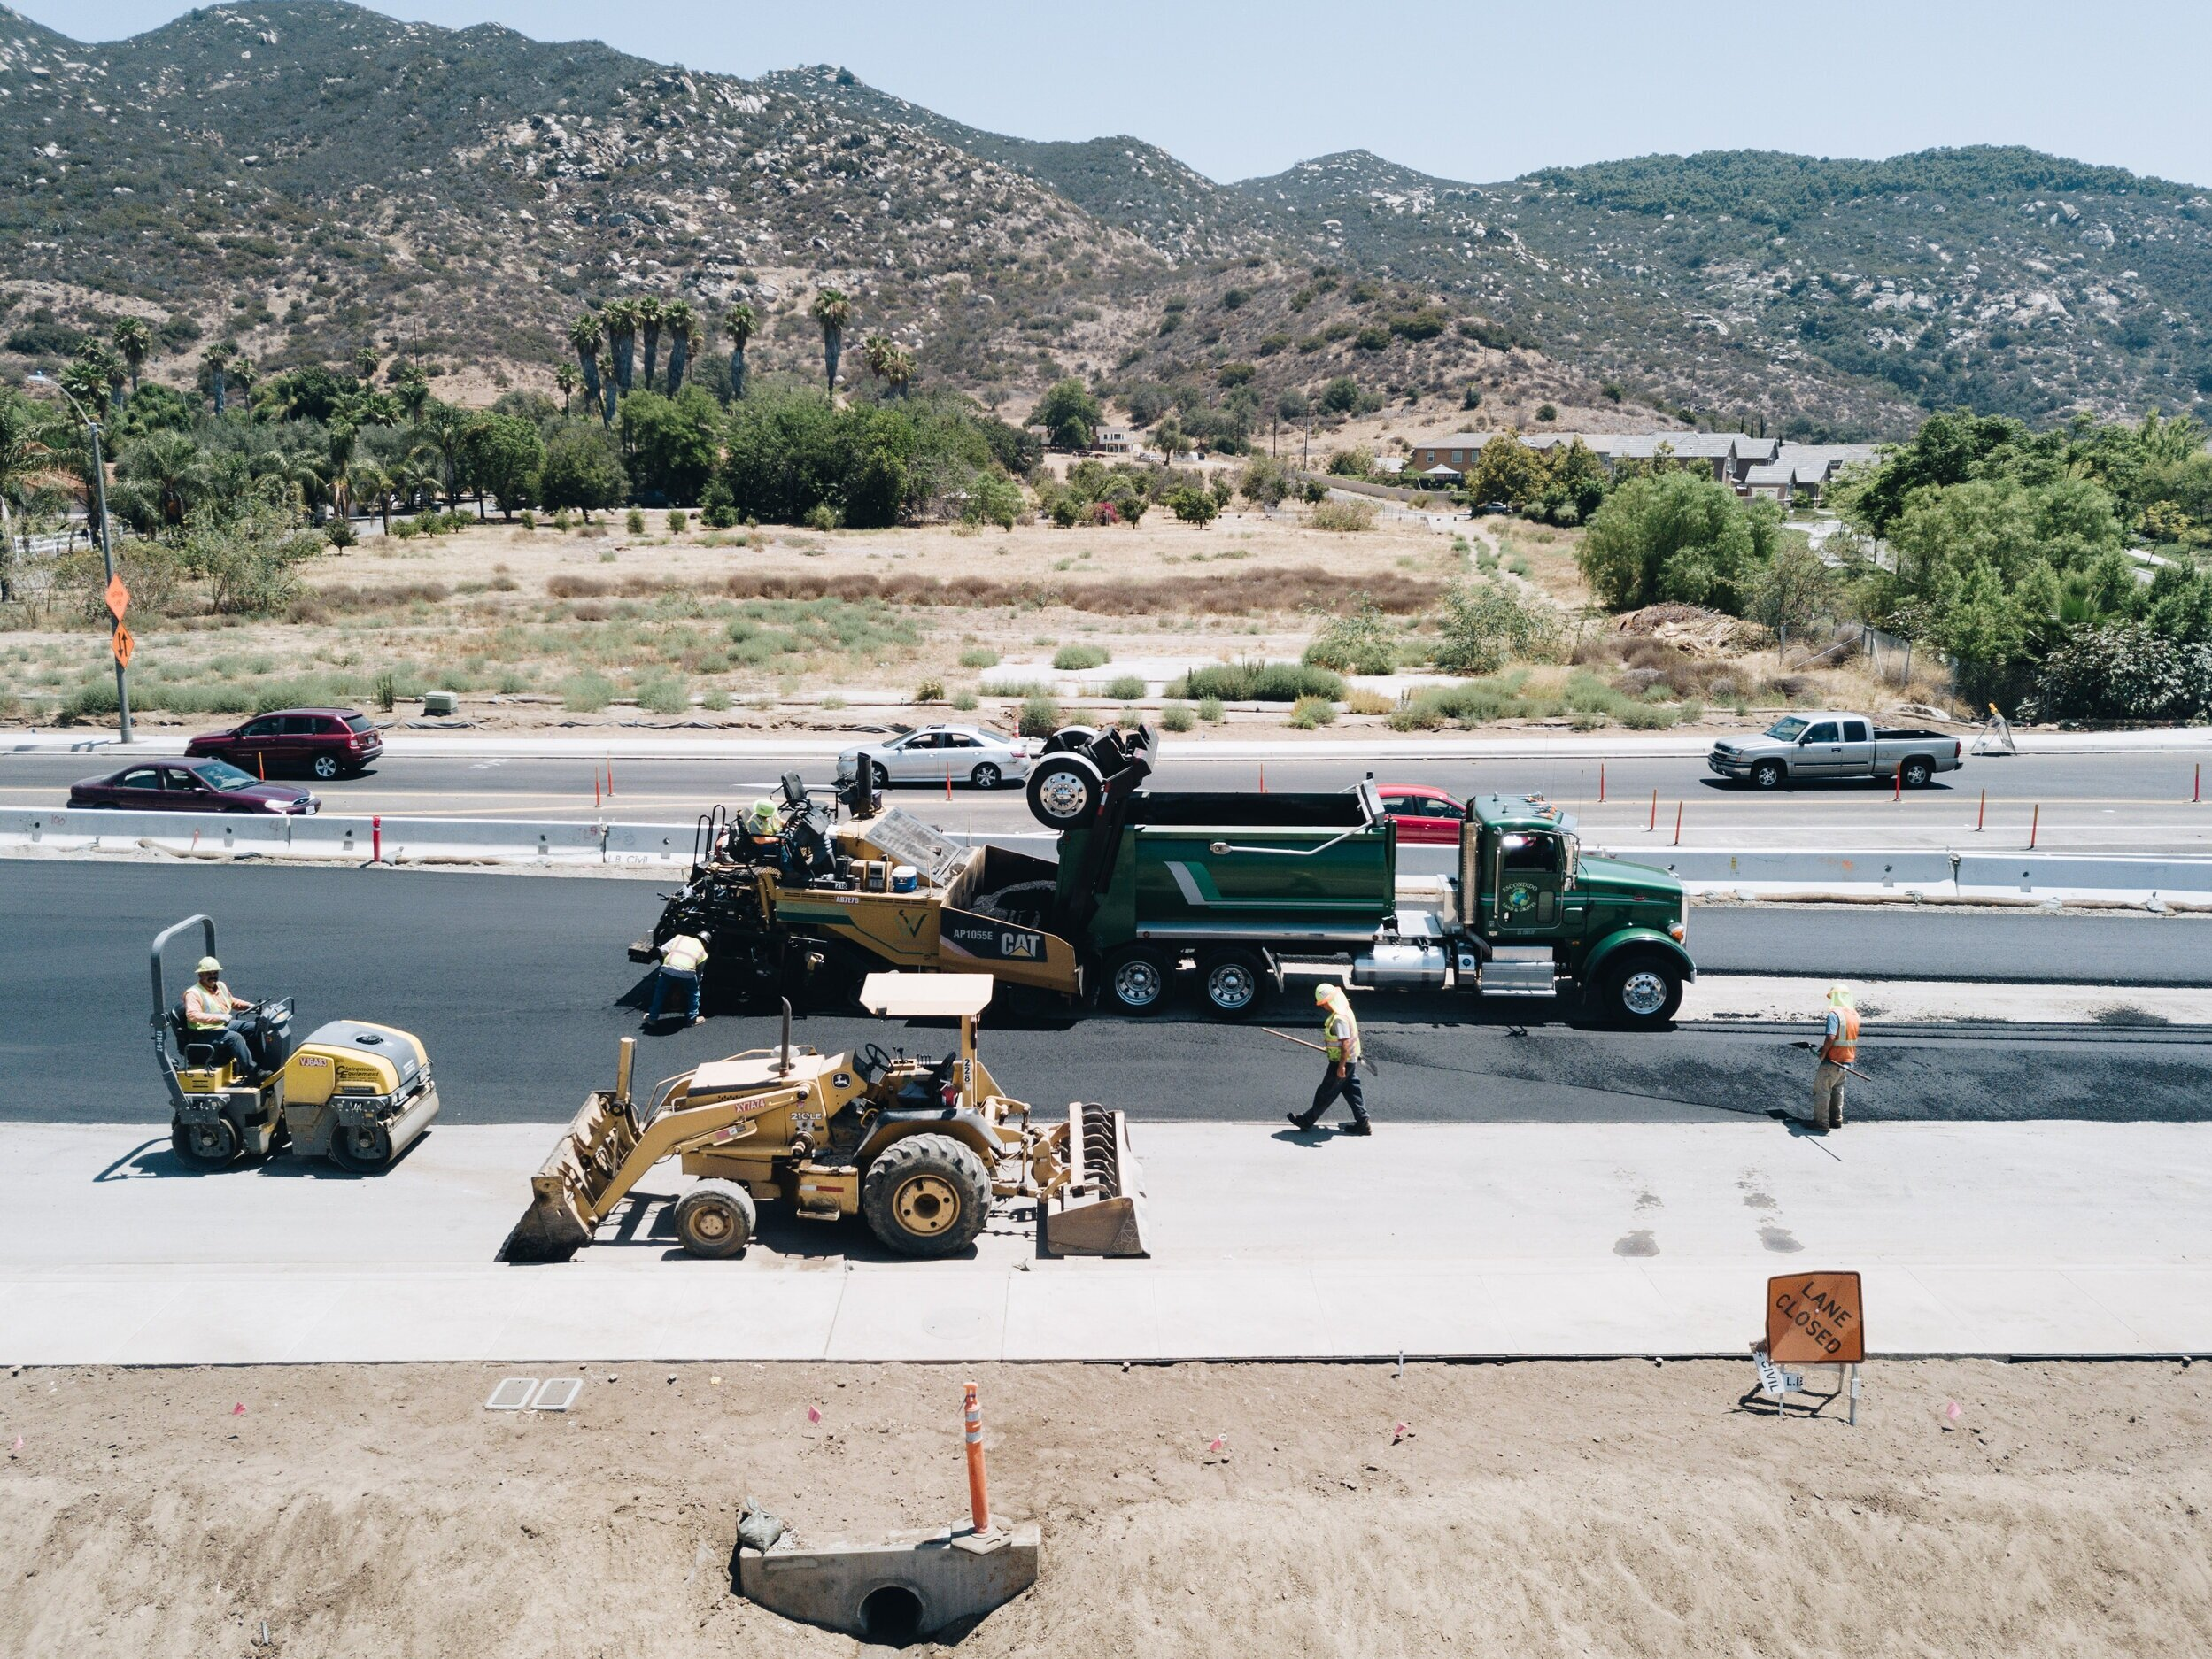 - At George Weir Asphalt Construction we take great pride in completing projects of all shapes and sizes on time and on budget. We work with General Contractors, Public Agencies, Property Managers, HOA Communities, and Private Homeowners to provide the highest quality of service to our customers.